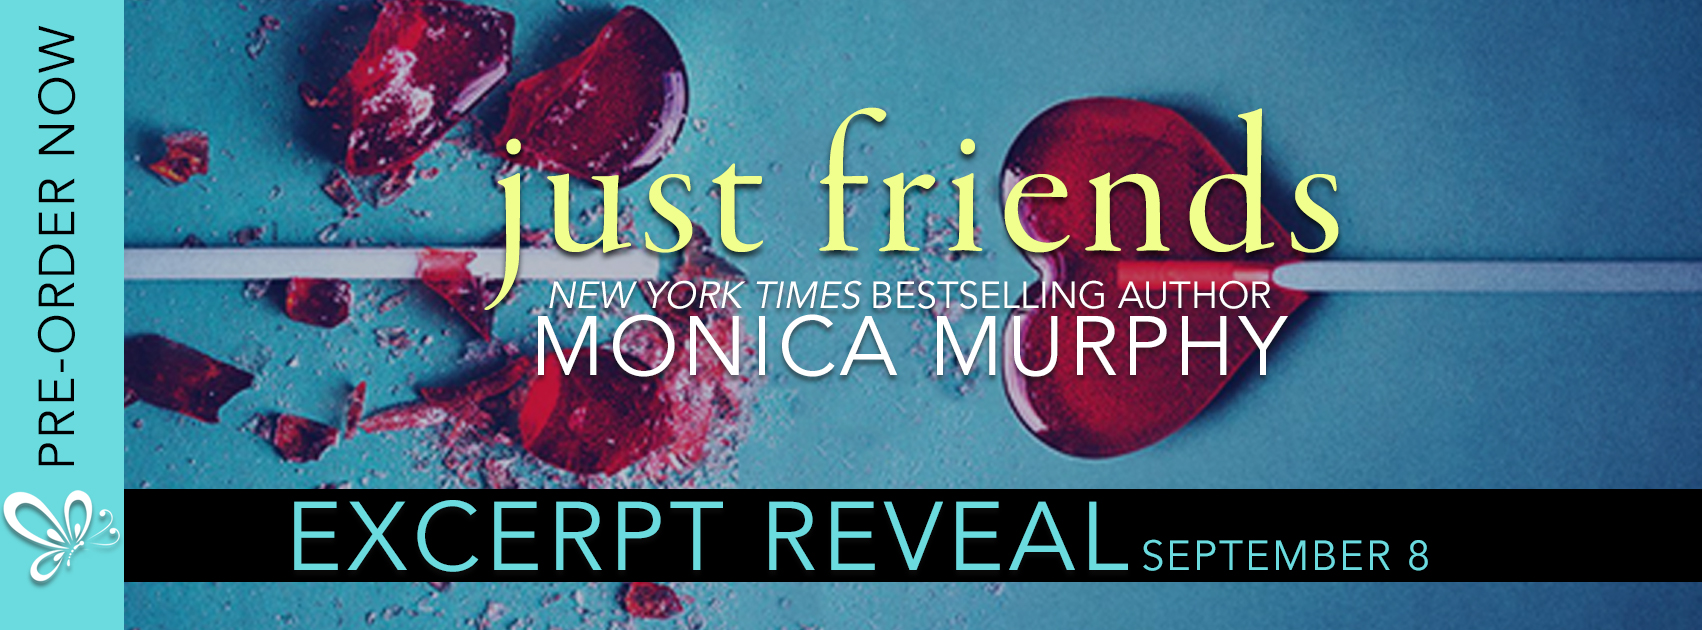 Excerpt Reveal: Just Friends by Monica Murphy